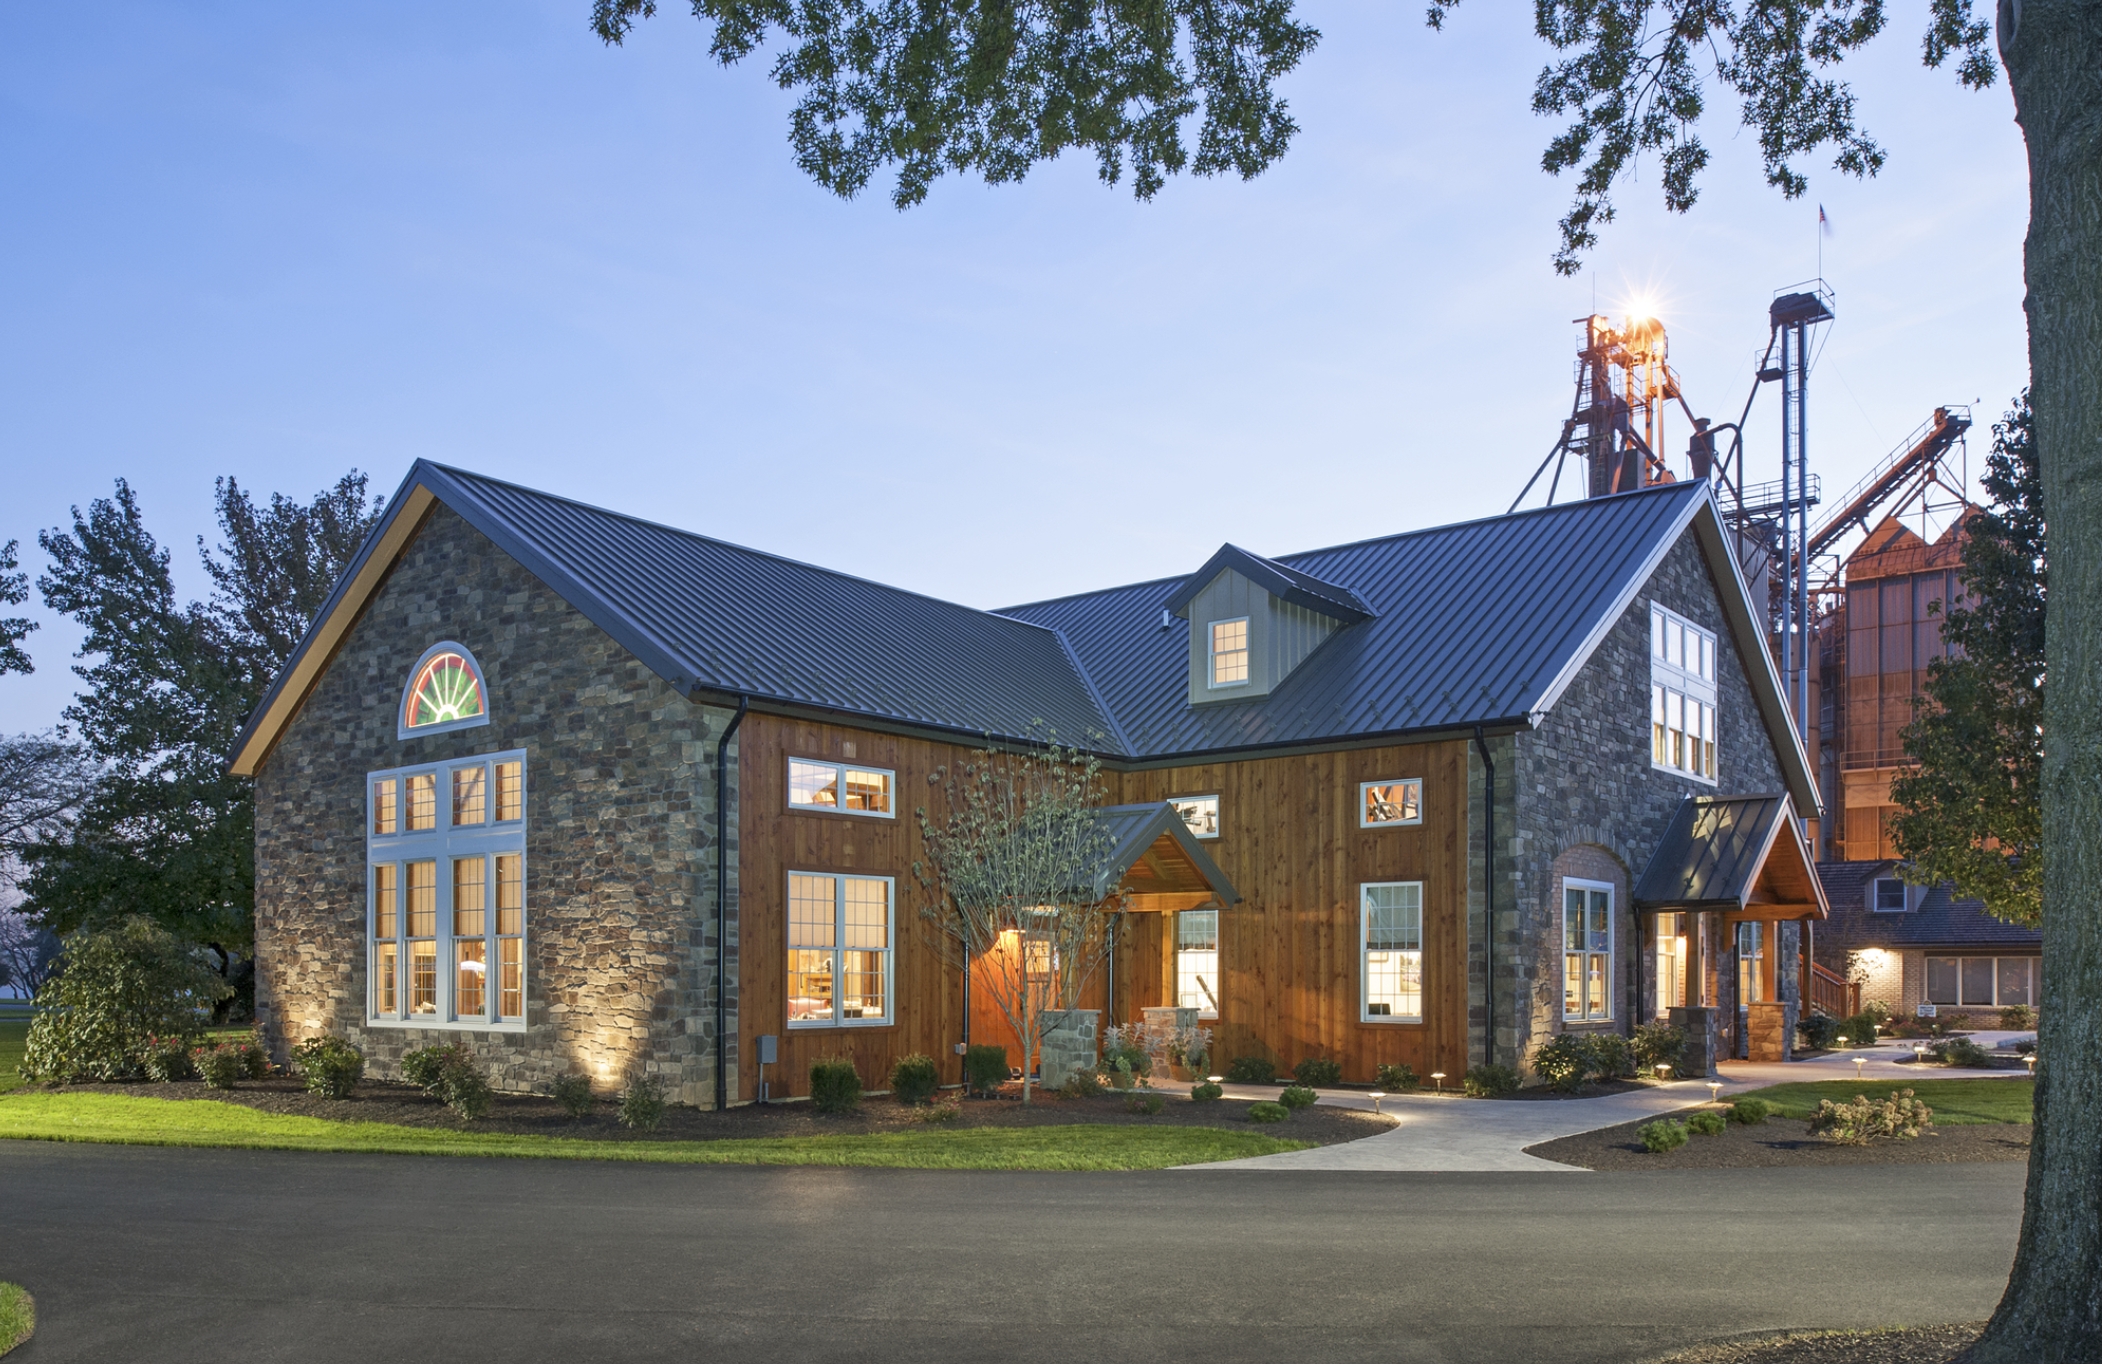 Standing Seam Metal Roof Crowns Jaindl Farms Office Addition - Roofing